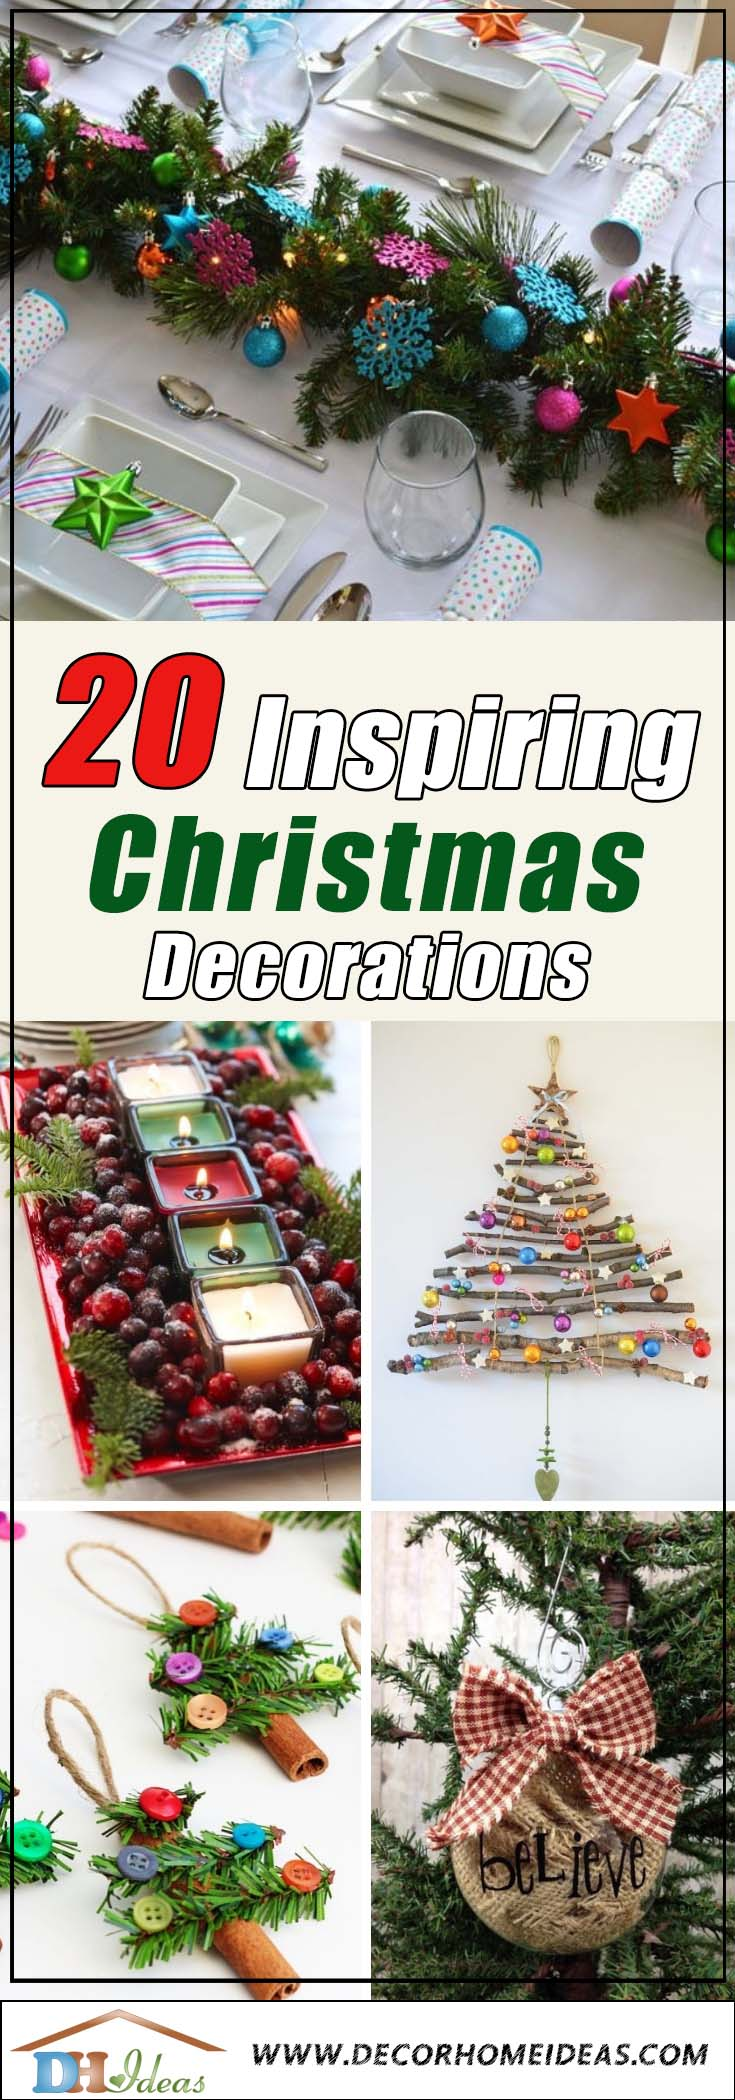 20 Lovely Christmas Decoration Ideas To Inspire You | Make your Christmas decoration the best with all these tips and ideas #xmas #x-mas #christmas #christmasdecor #decoration #decoratingideas #festive #decorhomeideas